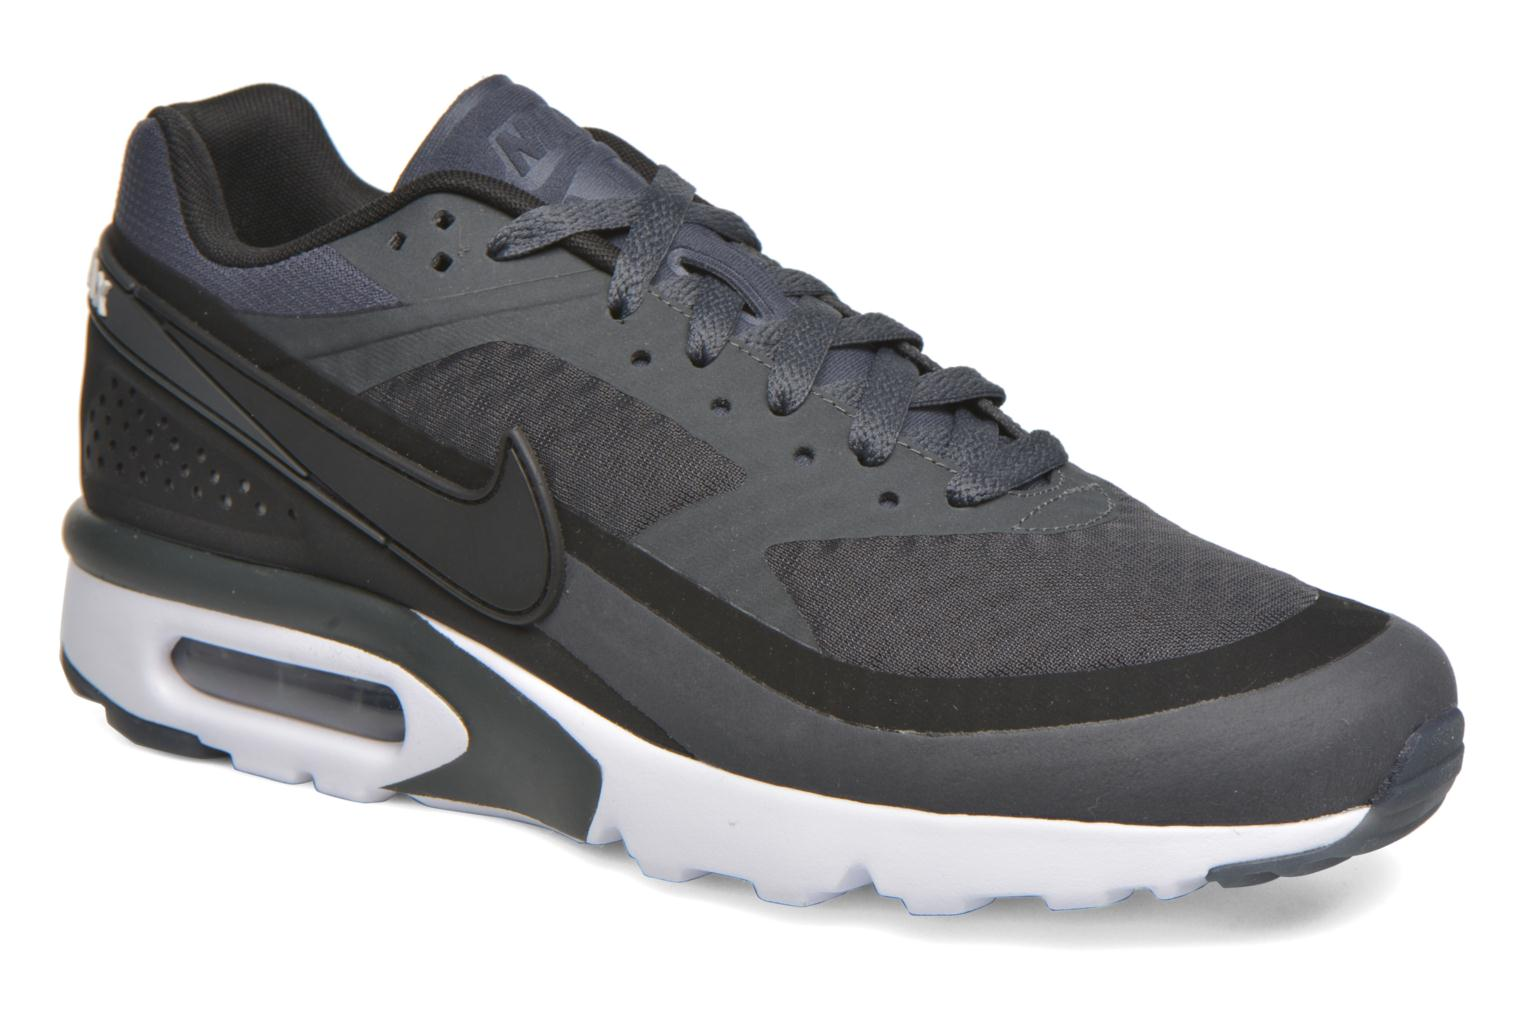 Nike Air Max Bw Ultra Anthracite/Black-White